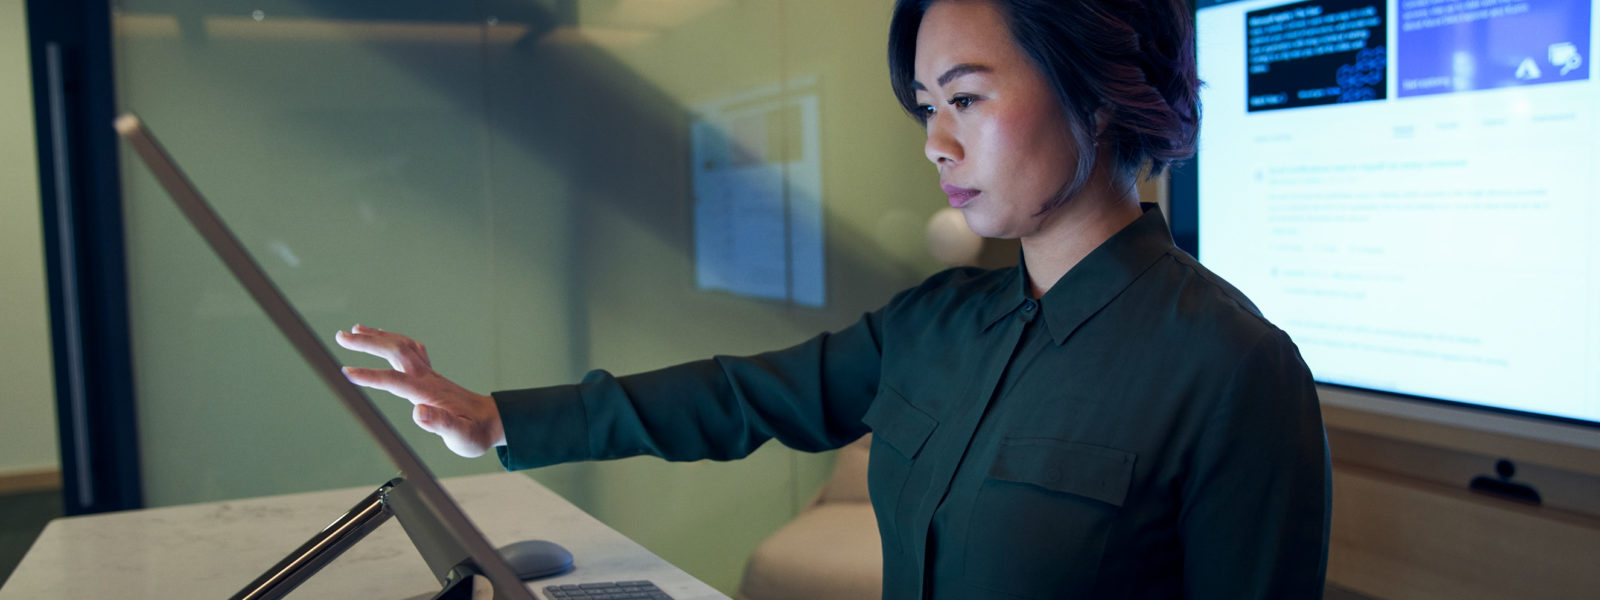 Side profile of a woman wearing a dark shirt in a dim office scrolling or working on a Microsoft Surface Studio.